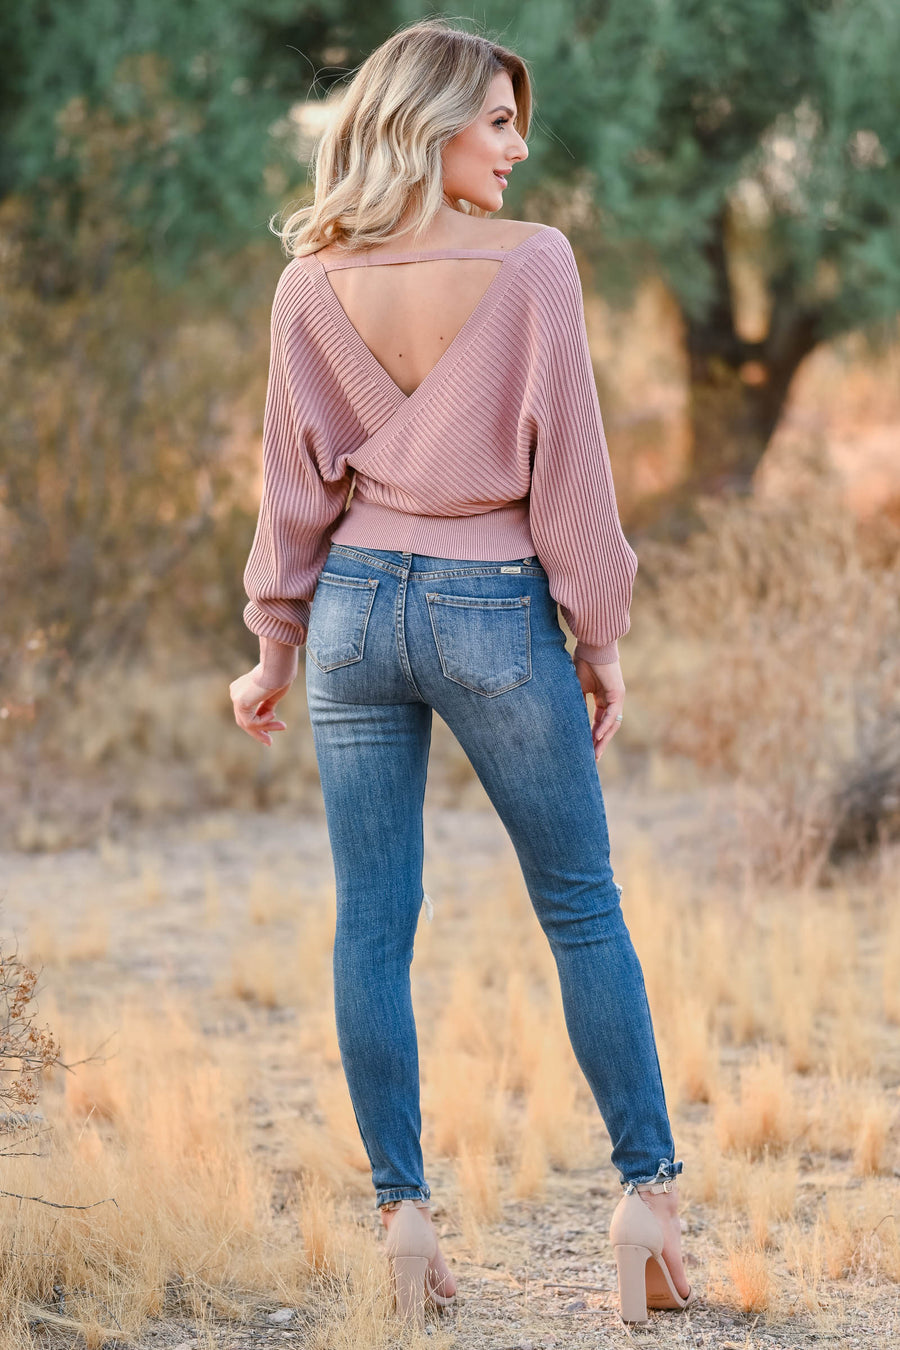 Best Day Ever Sweater - Dusty Rose womens trendy wrap sweater v neckline self tie at waist closet candy front